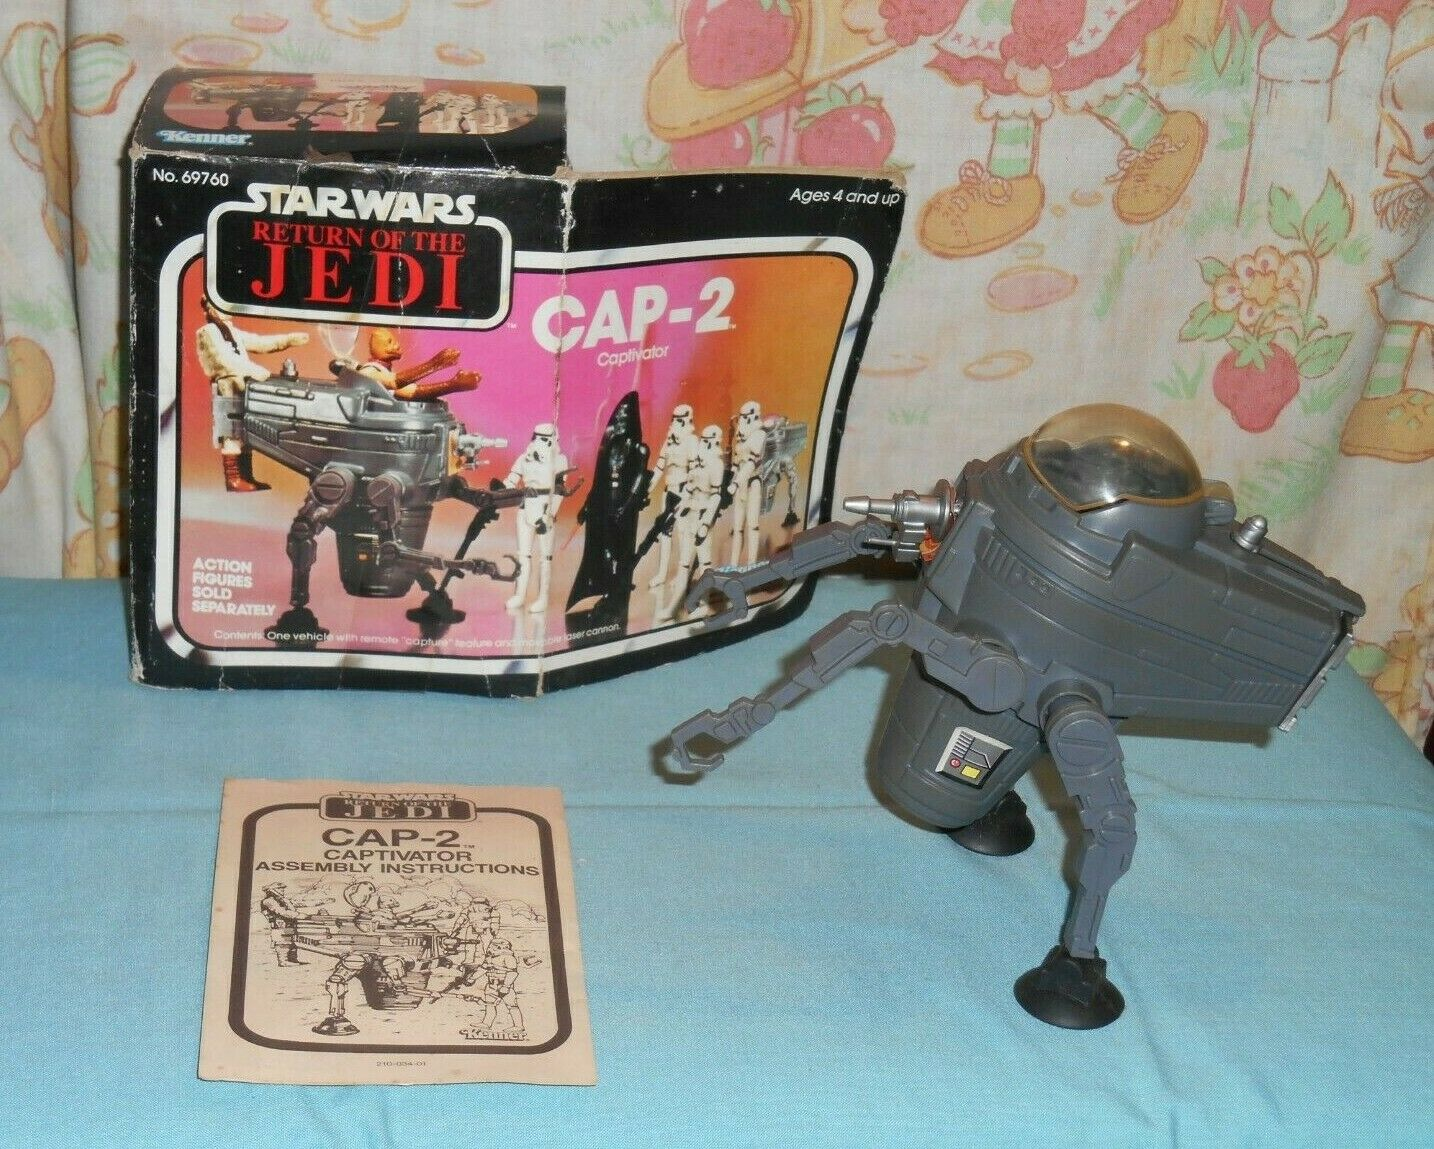 Vintage Star Wars ROTJ CAP-2 Captivator mini-rig in box